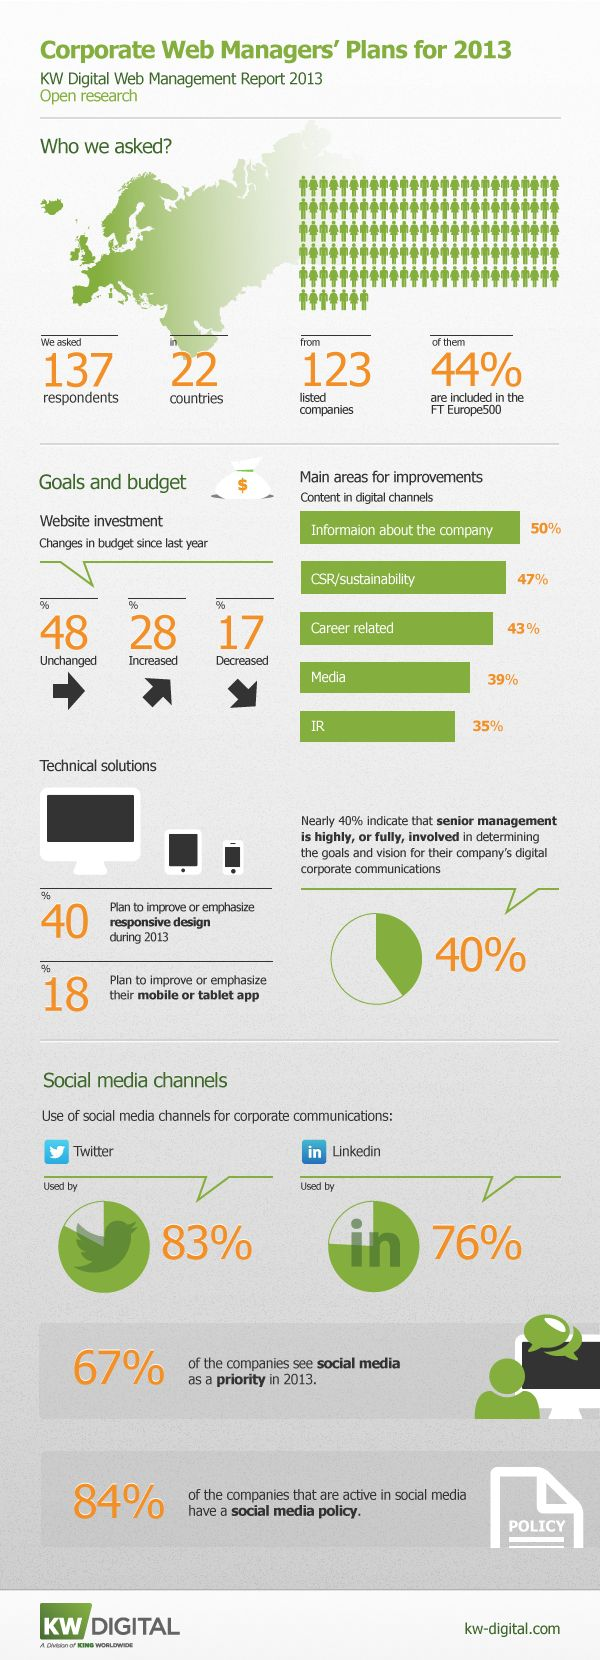 Infographic: Corporate Web Managers' Plan for 2013  KW Digital asked Corporate Web Managers at the largest listed companies across Europe about their plans, priorities and challenges in 2013 regarding their online corporate communication.  http://kw-digital.com